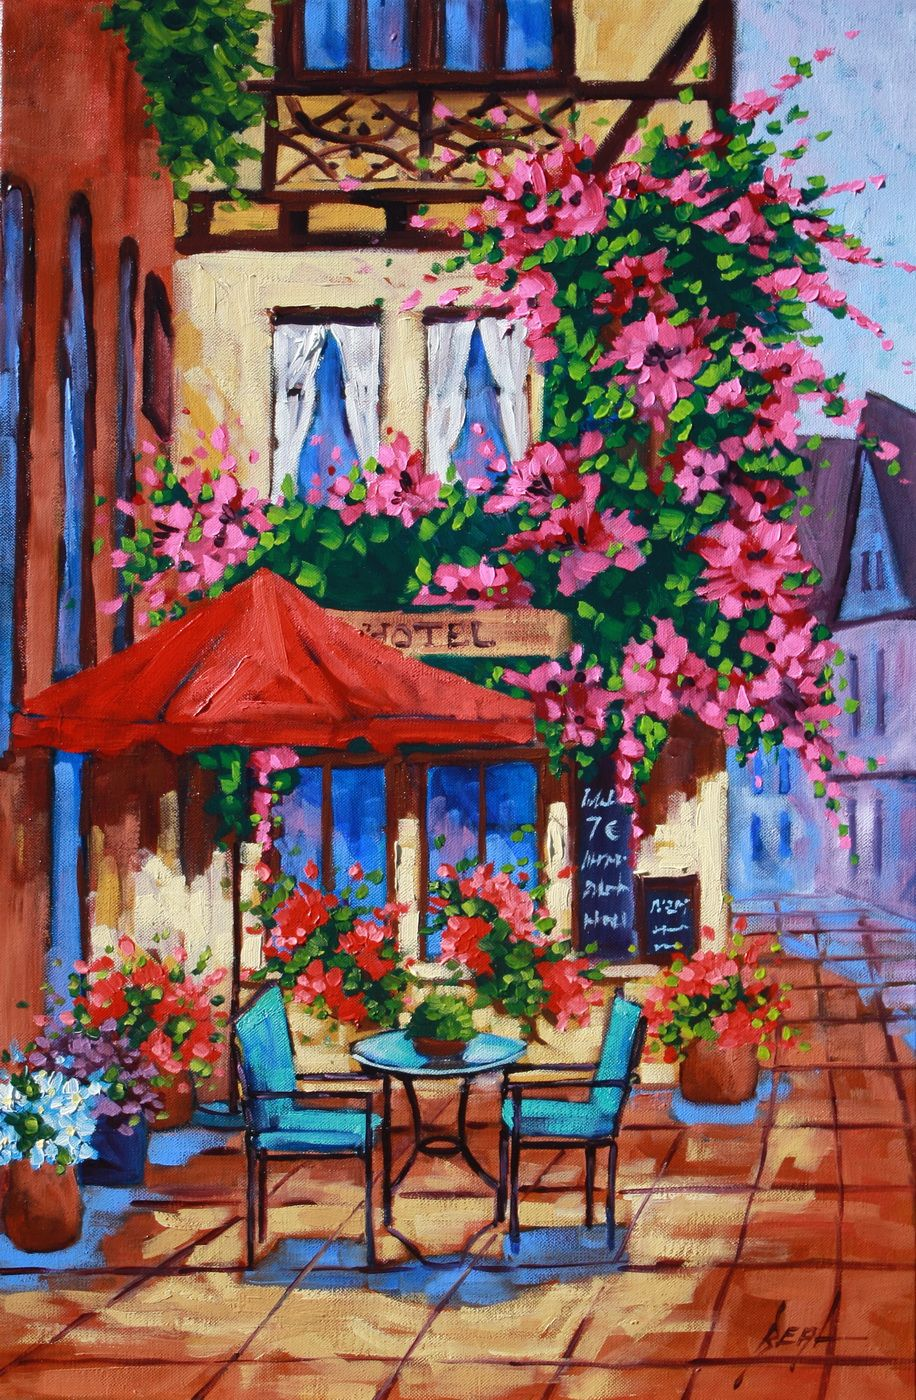 European Ambiance Rebecca Beal 20 X 30 Colorful Original Oil Painting Outdoor Cafe Loose Brush Strokes Loads Of Blooming Flowers And Sunshine